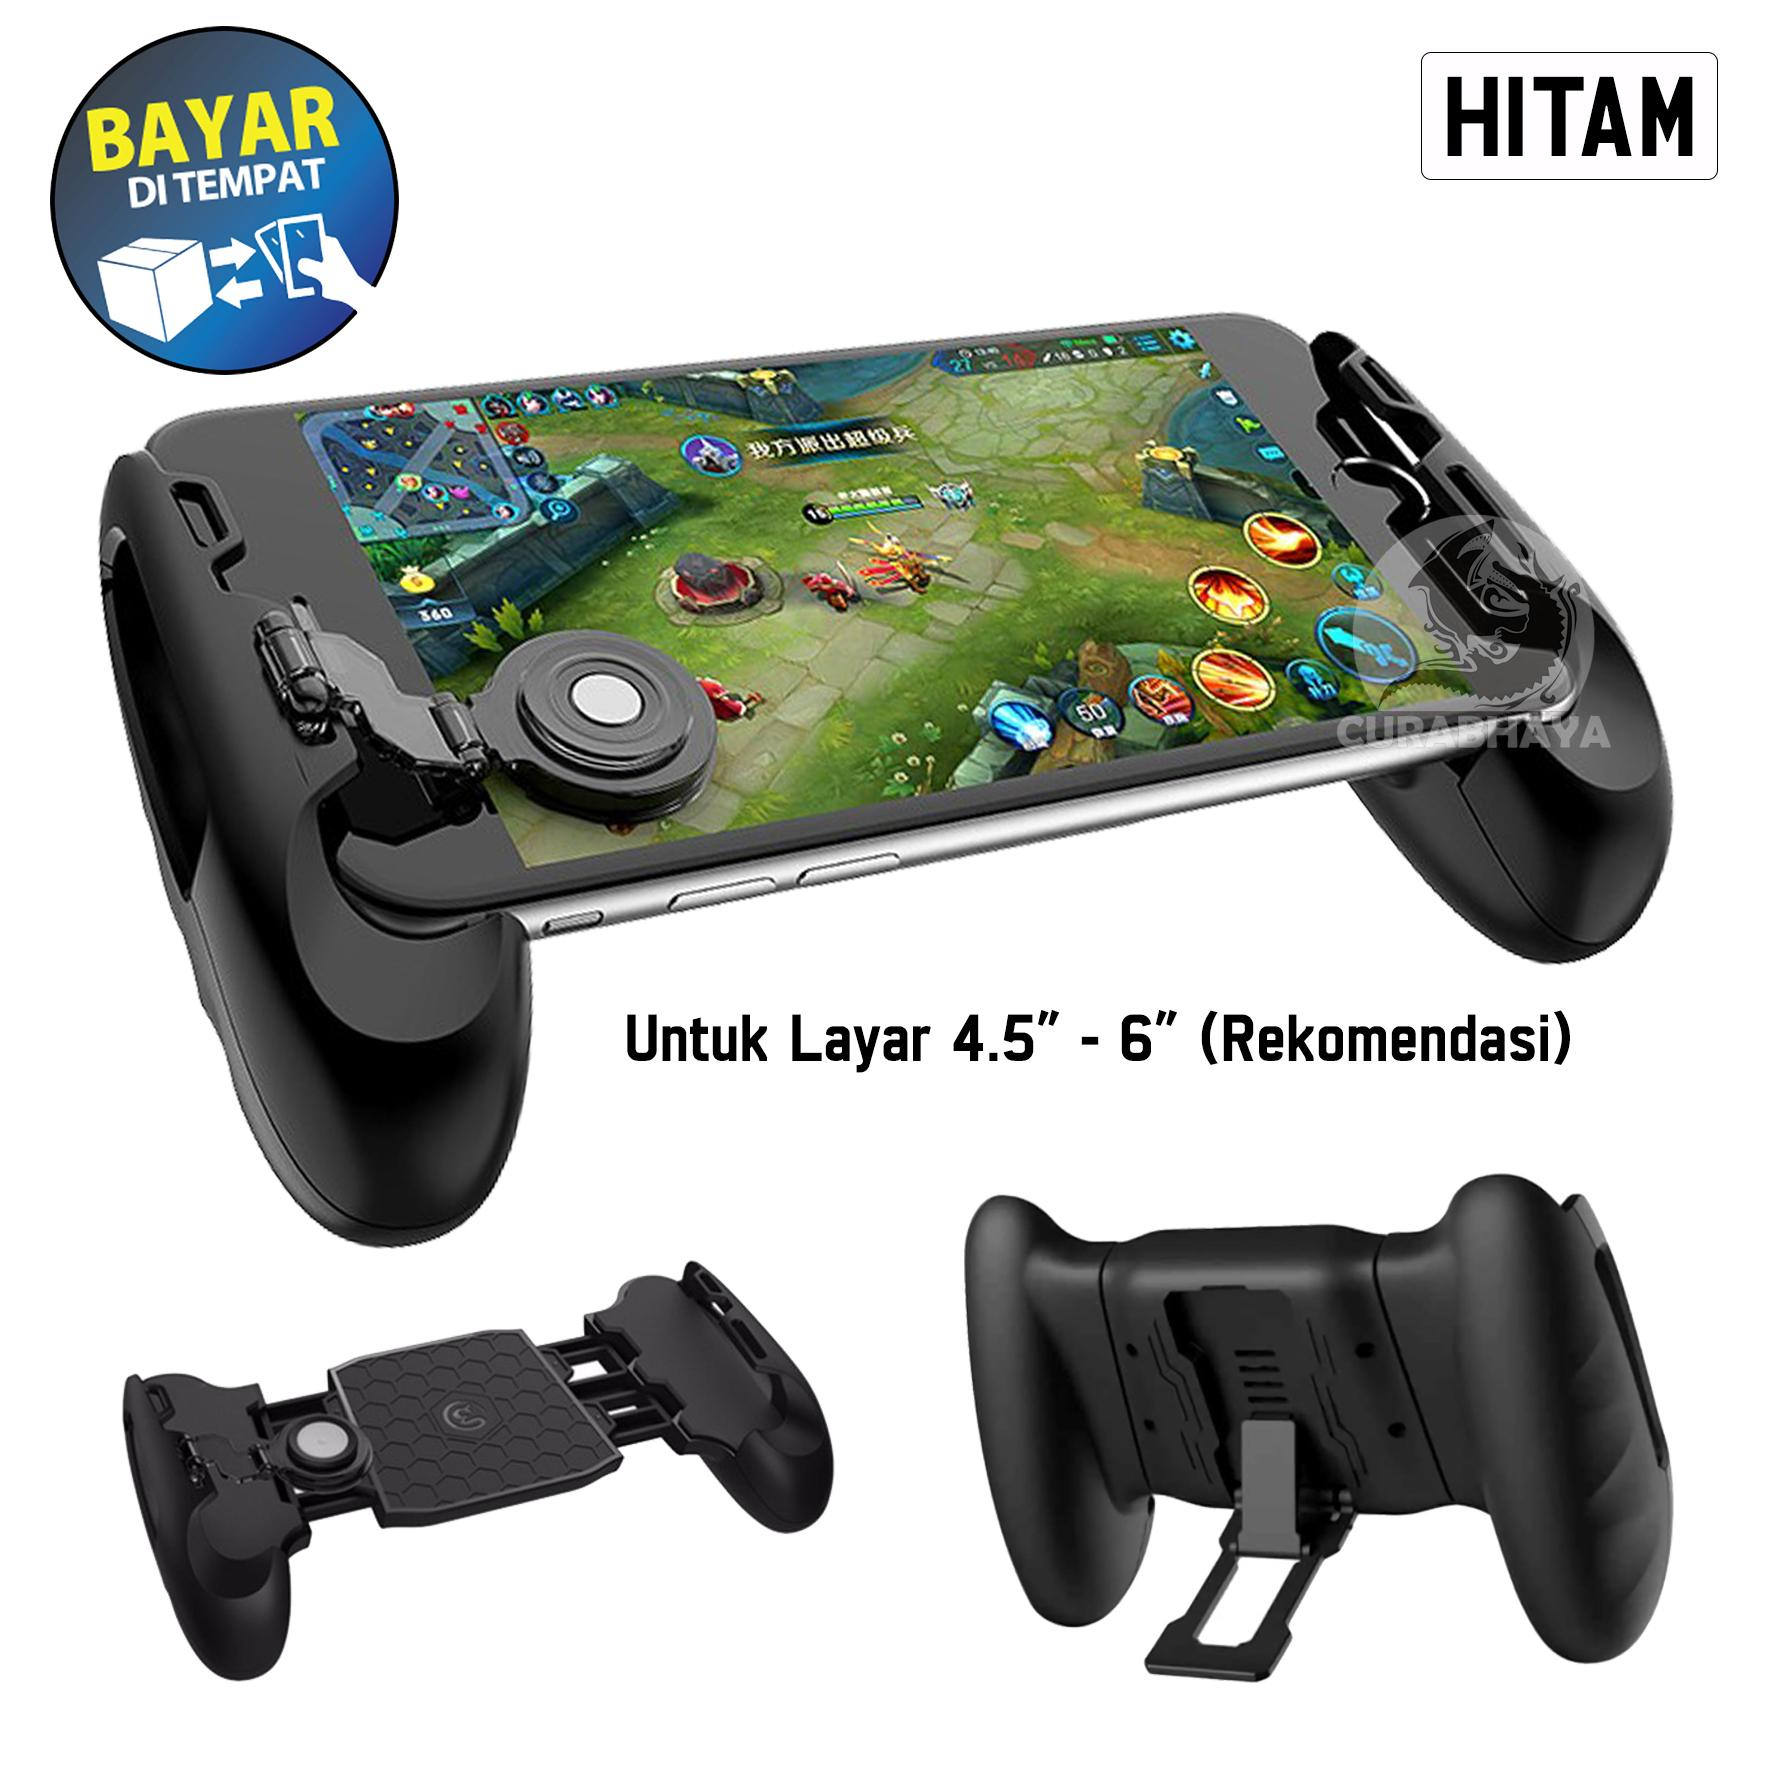 Gamepad F1 Controller Joypad Handle Grip Stand Gamepad With Joystick Universal Moba FPS for Mobile Legends